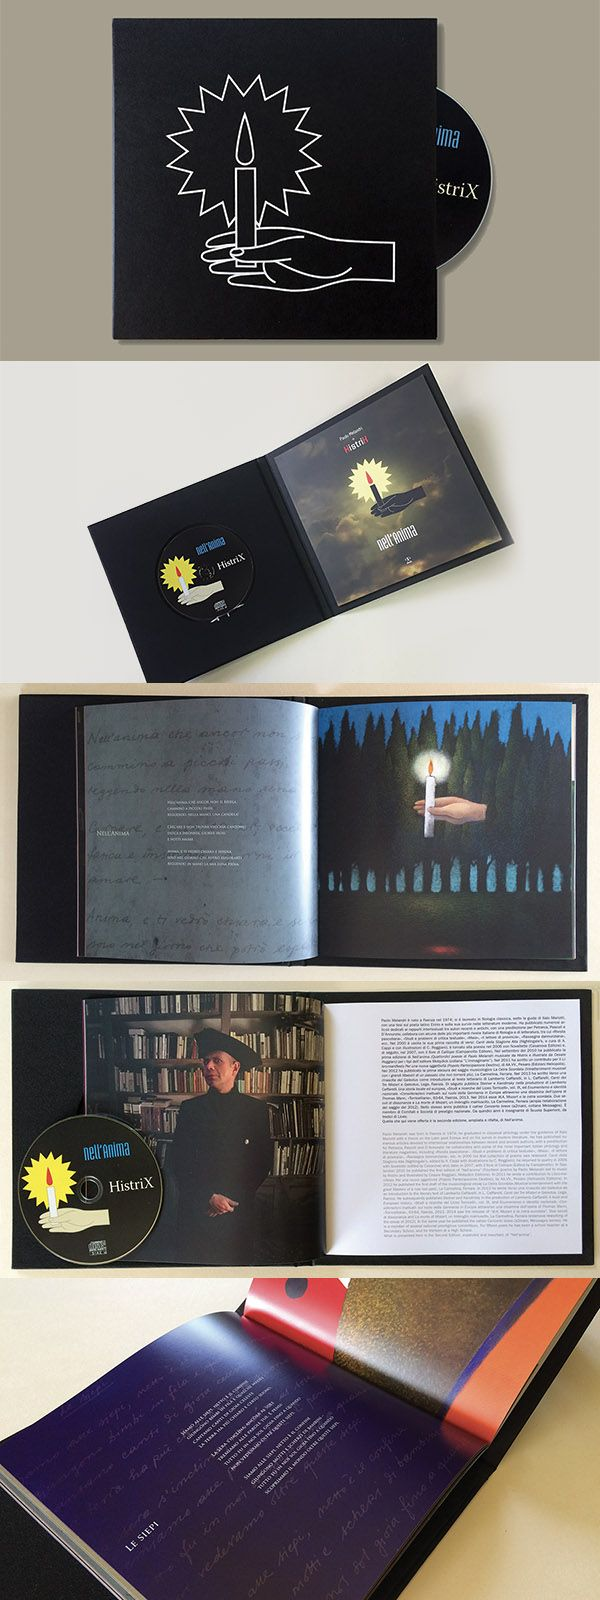 HistriX / Paolo Melandri. Nell'Anima. A full color 48 pages album with 14 paintings, photos, texts and lyrics in Italian and English. Size: 21 x 21 cm. A CD with 14 songs. Hard cover bind 23x23 cm. Edition: 200 copies. #music#poetry#song#lyrics#illustrationart